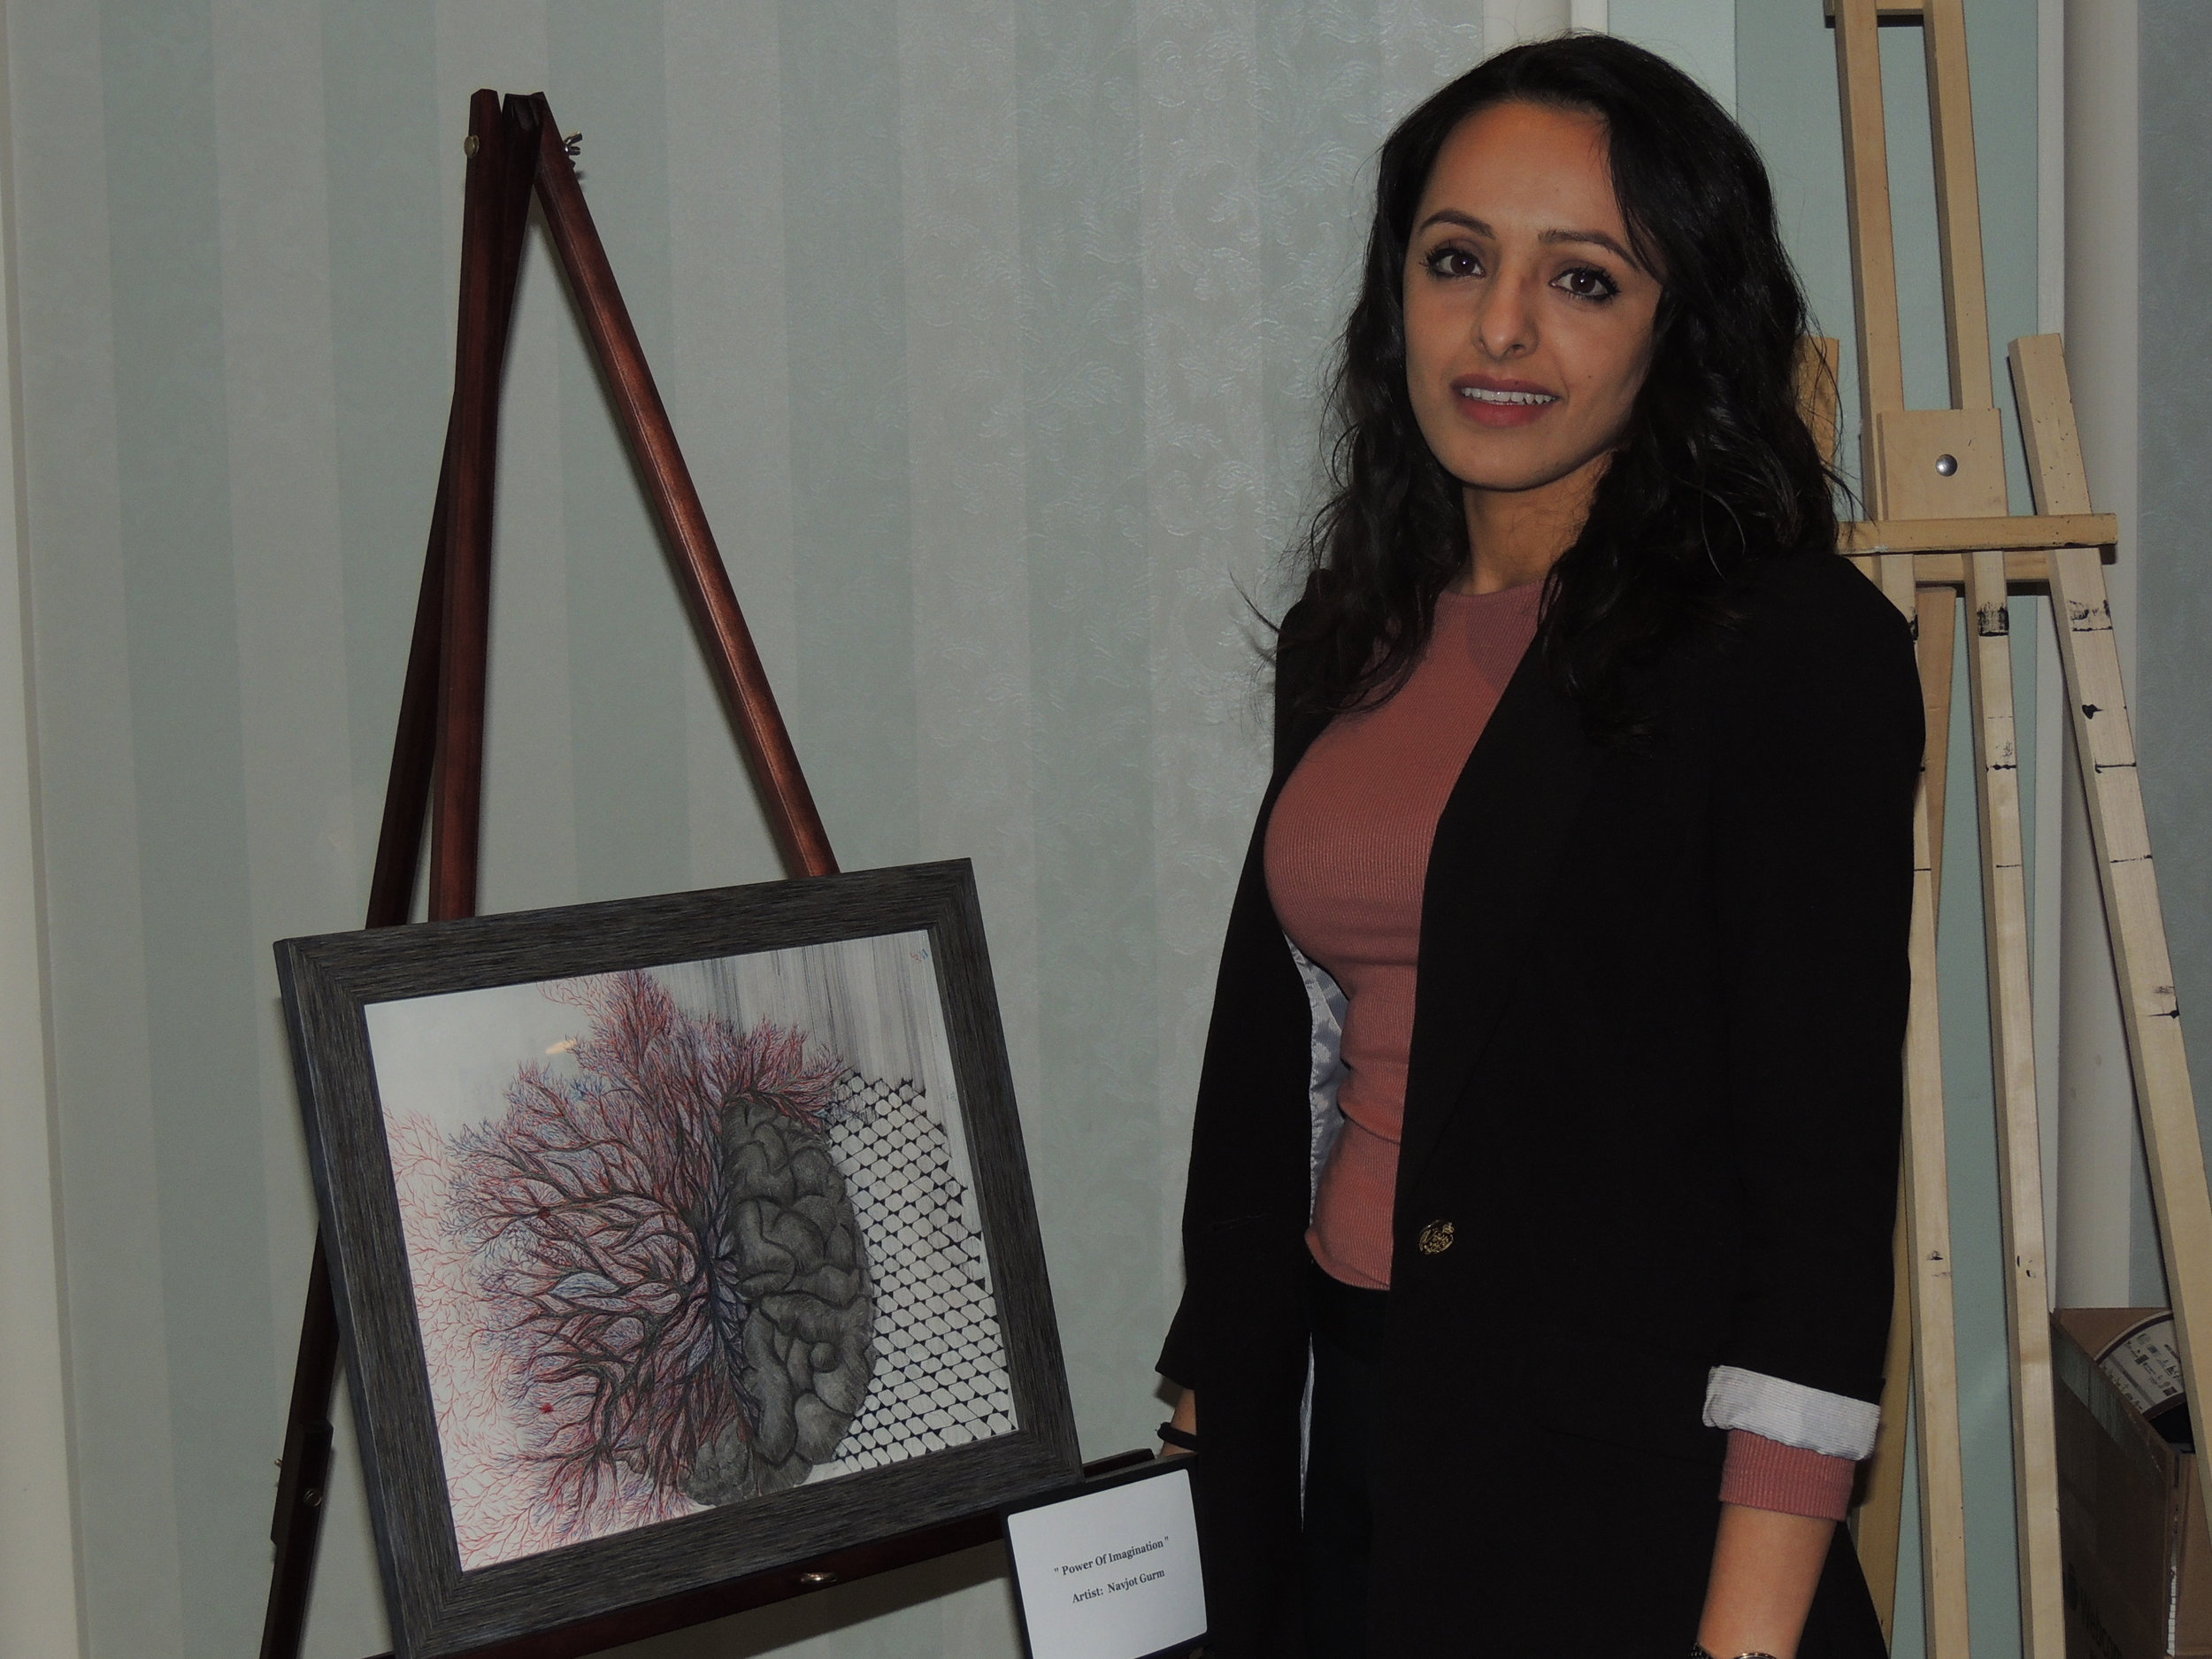 The Artis 3  Featurette artist and ABI & mental health advocate Navjot Gurm & some of her artwork. Photo by Mira Louis.